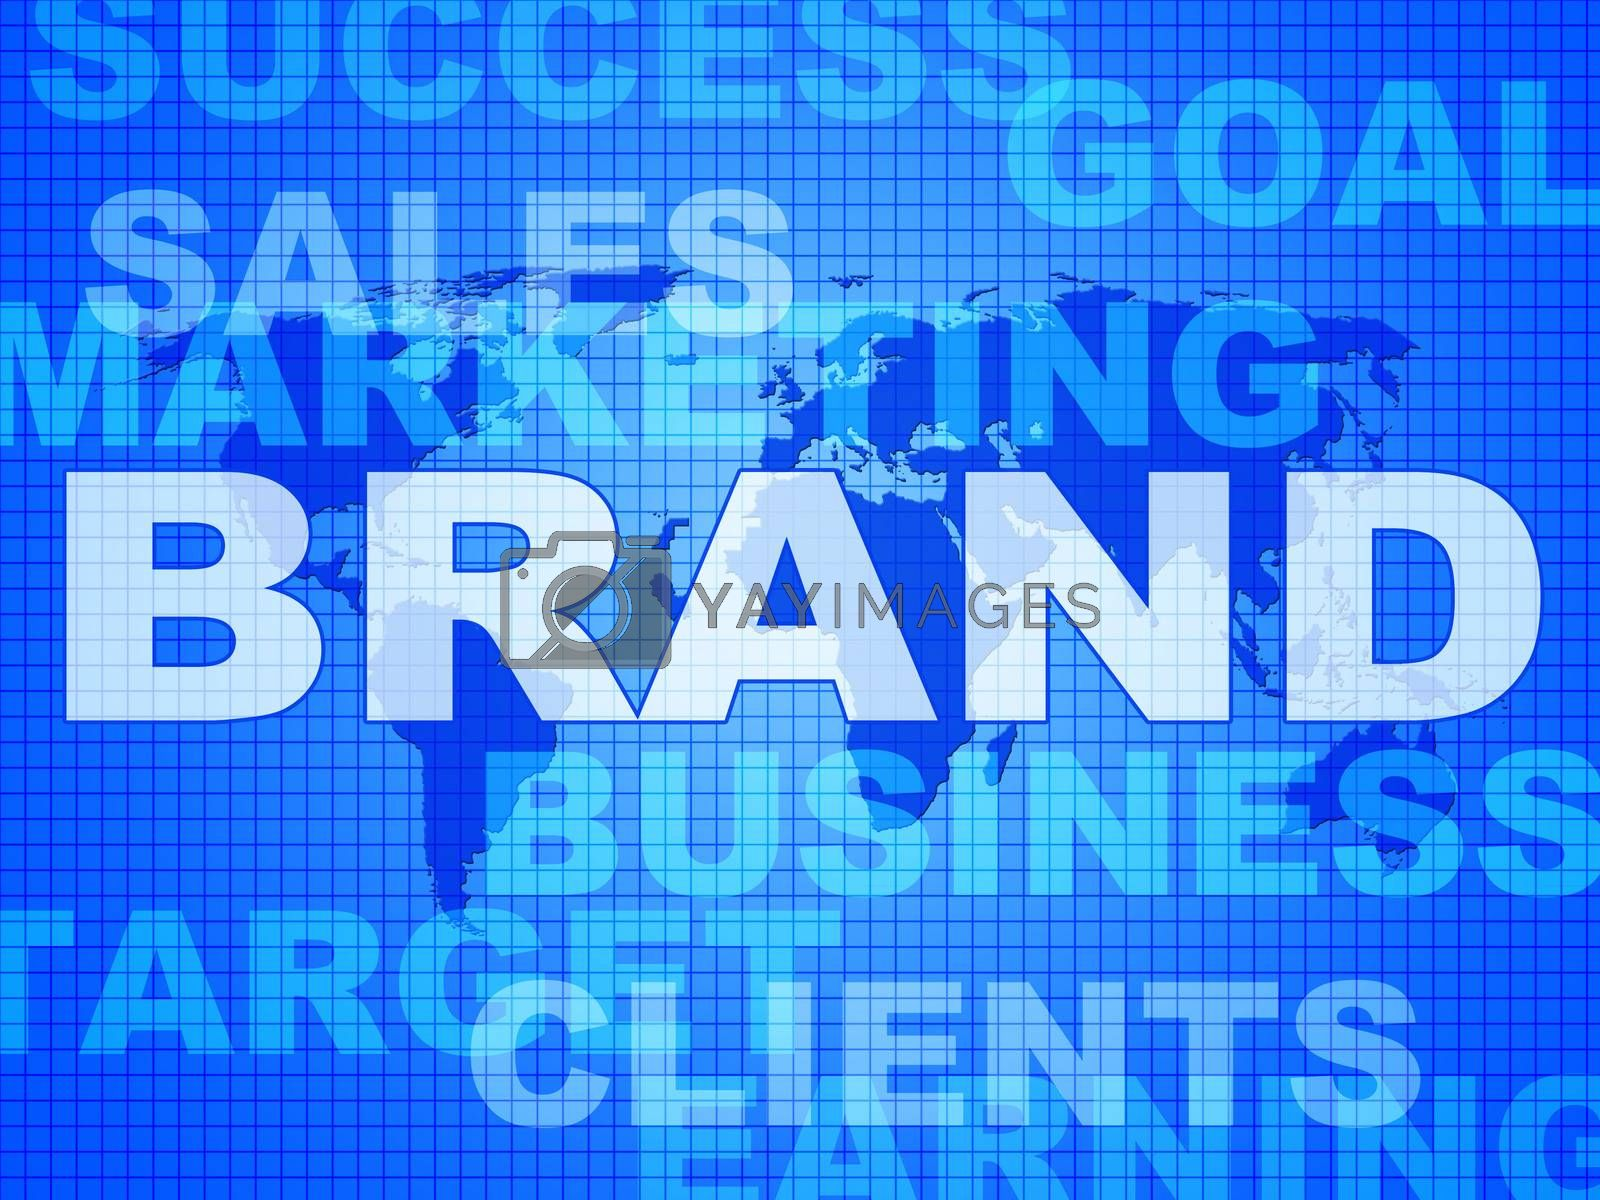 Brand Words Shows Company Identity And Business by stuartmiles